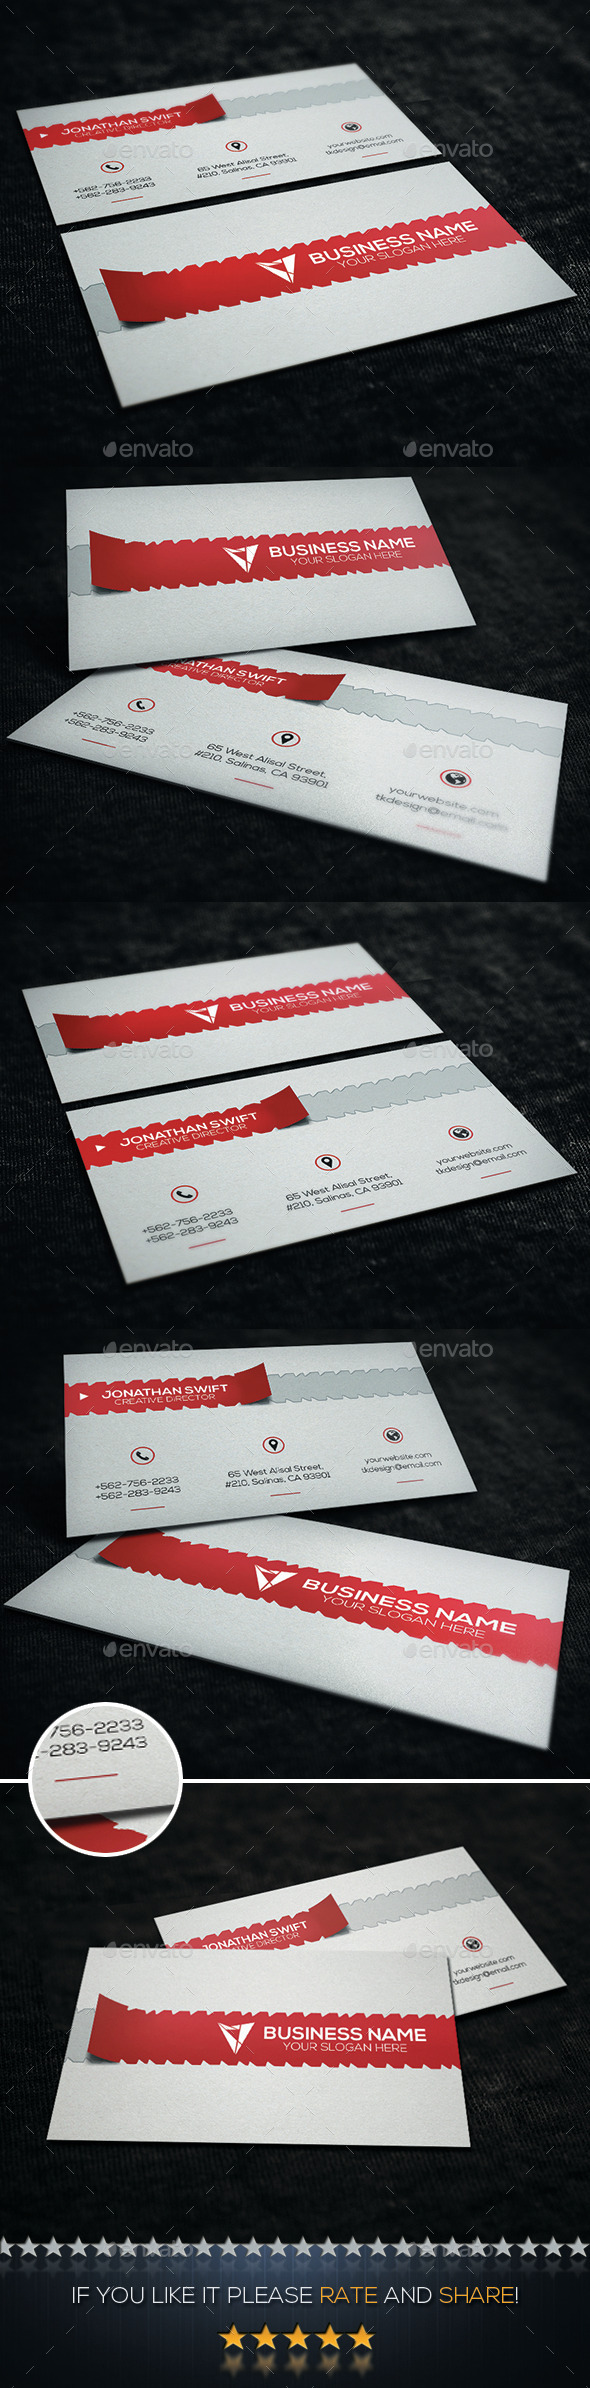 Creative Business Card No.09